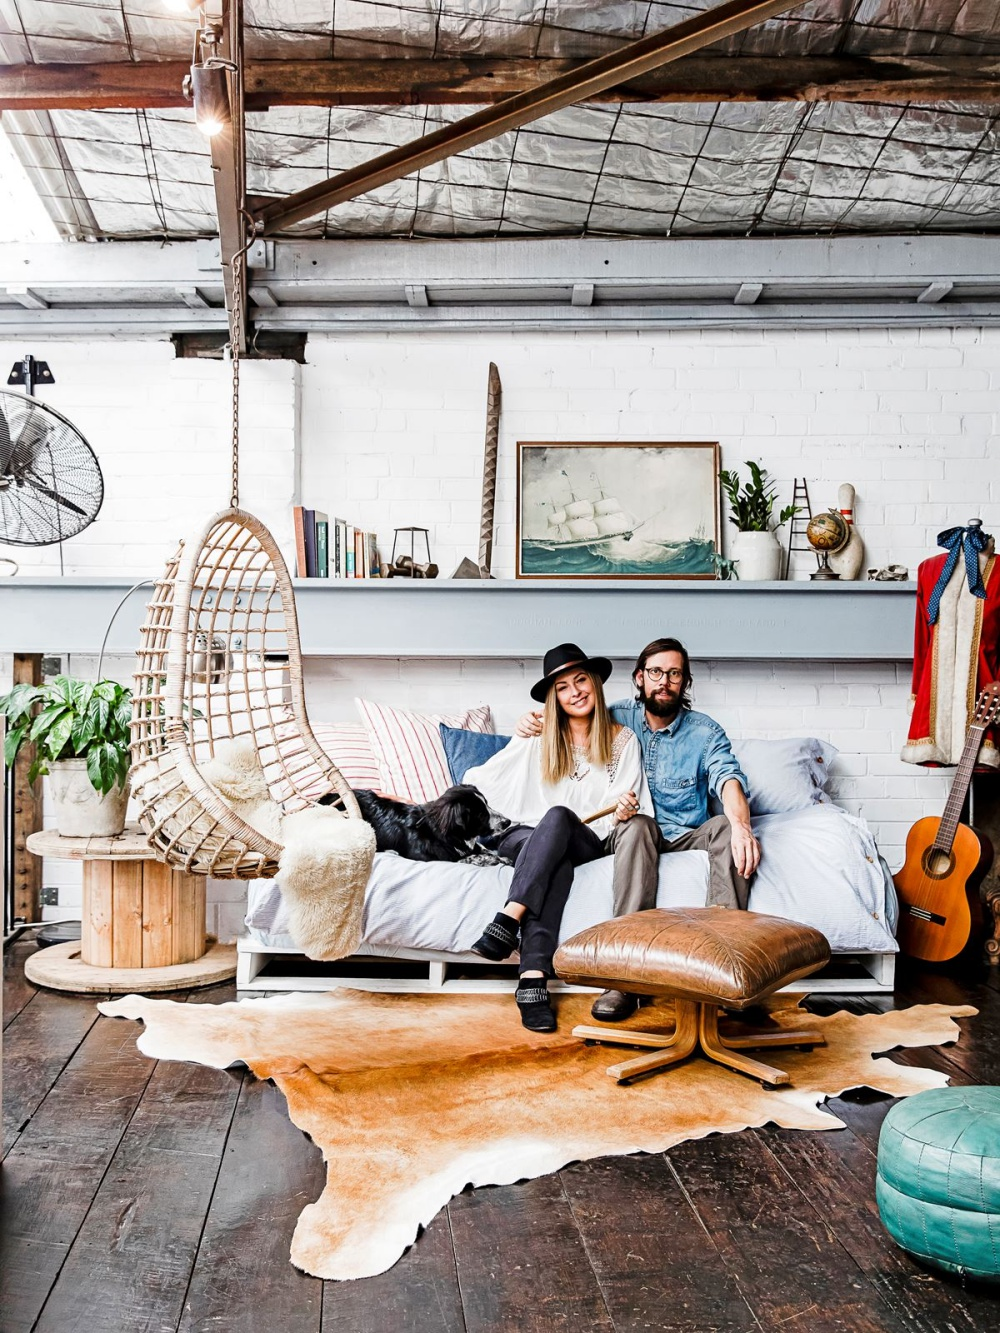 Converted Warehouse Transformed Into Treasure Trove